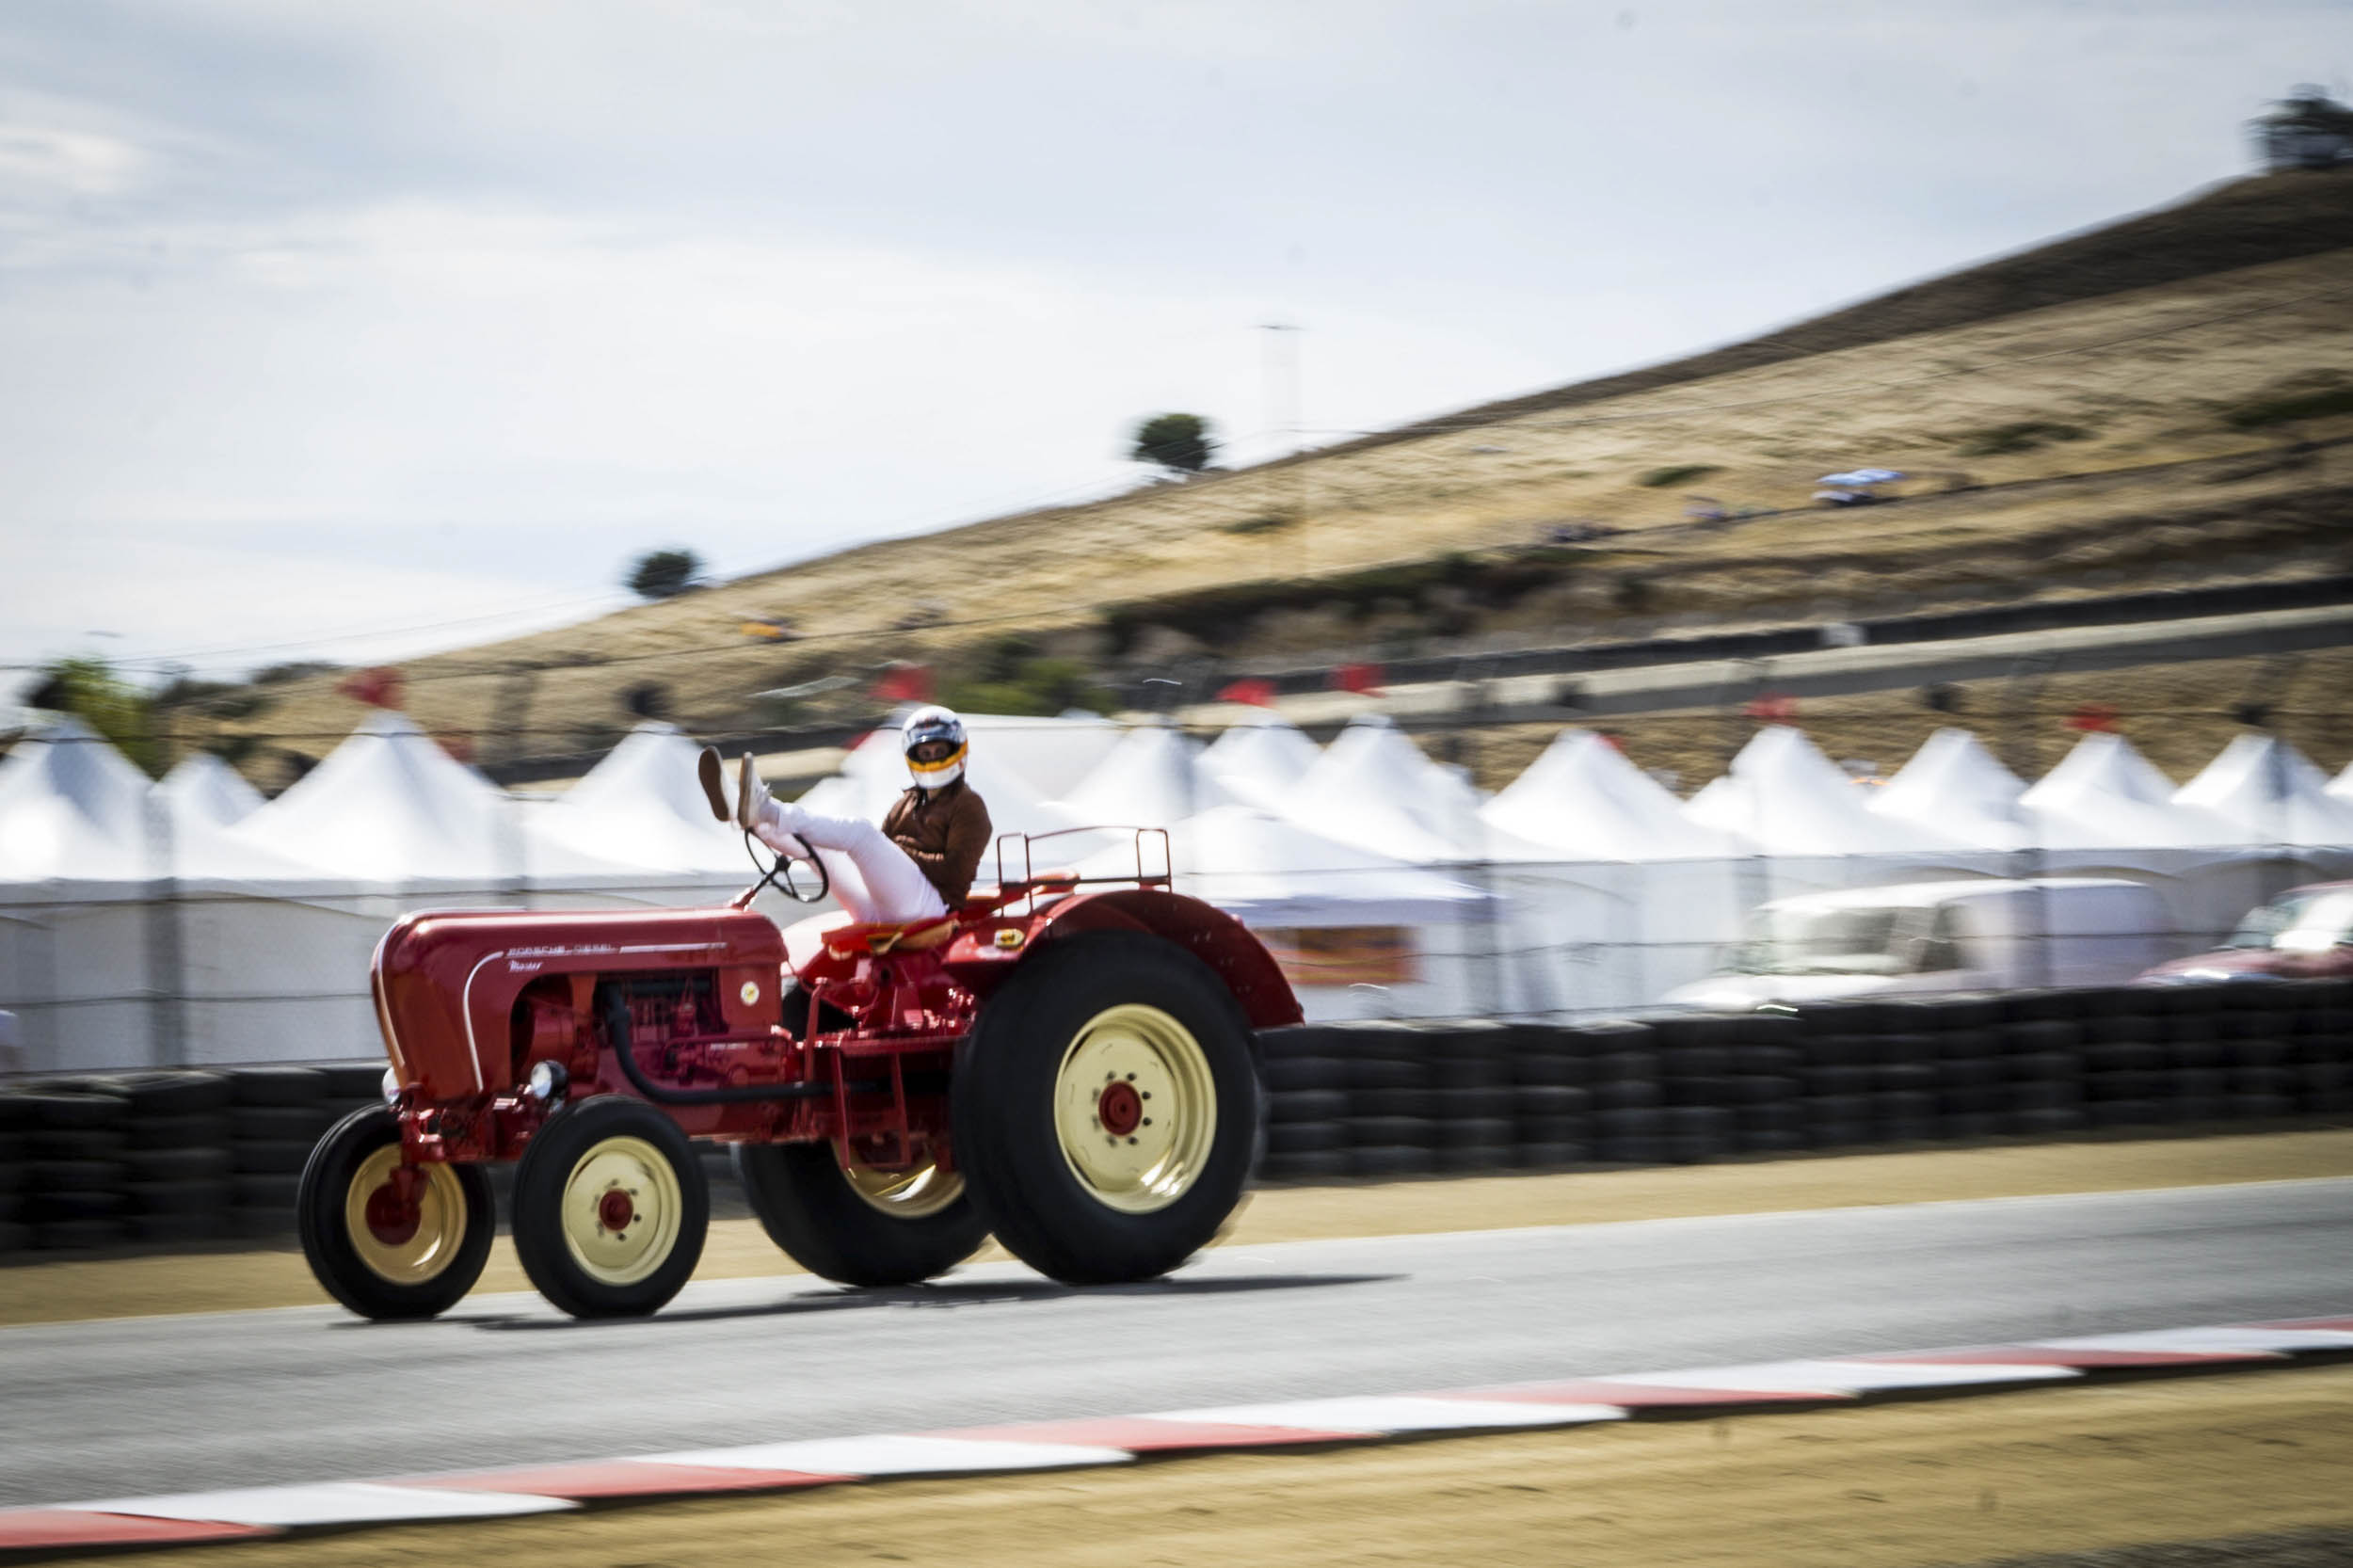 A Le Mans start to a tractor race featuring Porsche factory drivers sounds like fan fiction. We're not sure who came up with the idea, but whoever you are, you're a genius. Of course the tractor race was not as heated as the rest of the events at Rennsport. This competitor looks pretty relaxed.